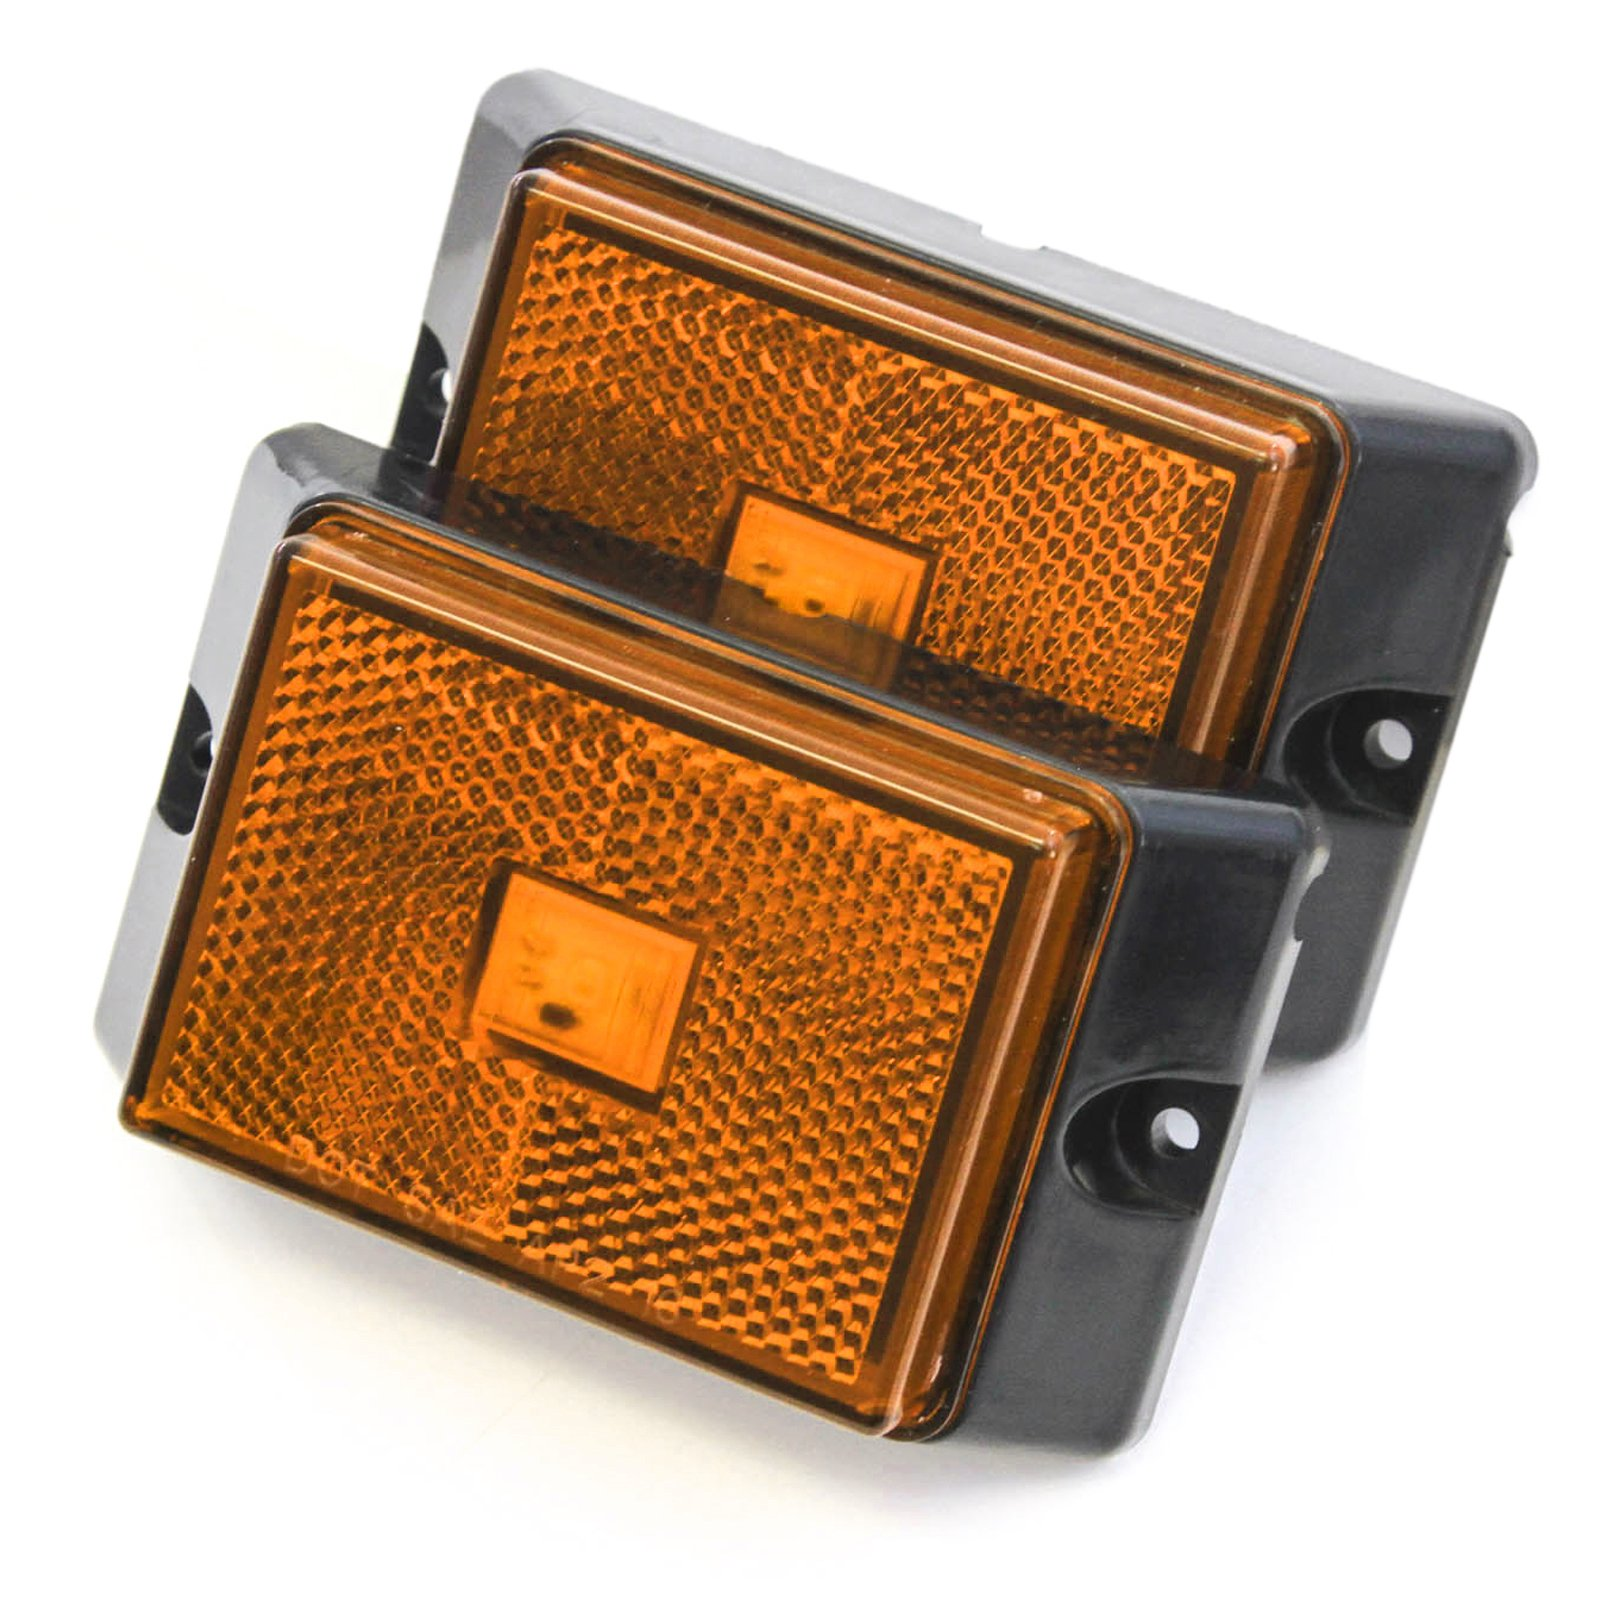 Red Hound Auto 2 Amber LED Side Marker Lights 4'' Clearance Truck Trailer Pickup Boat Bright